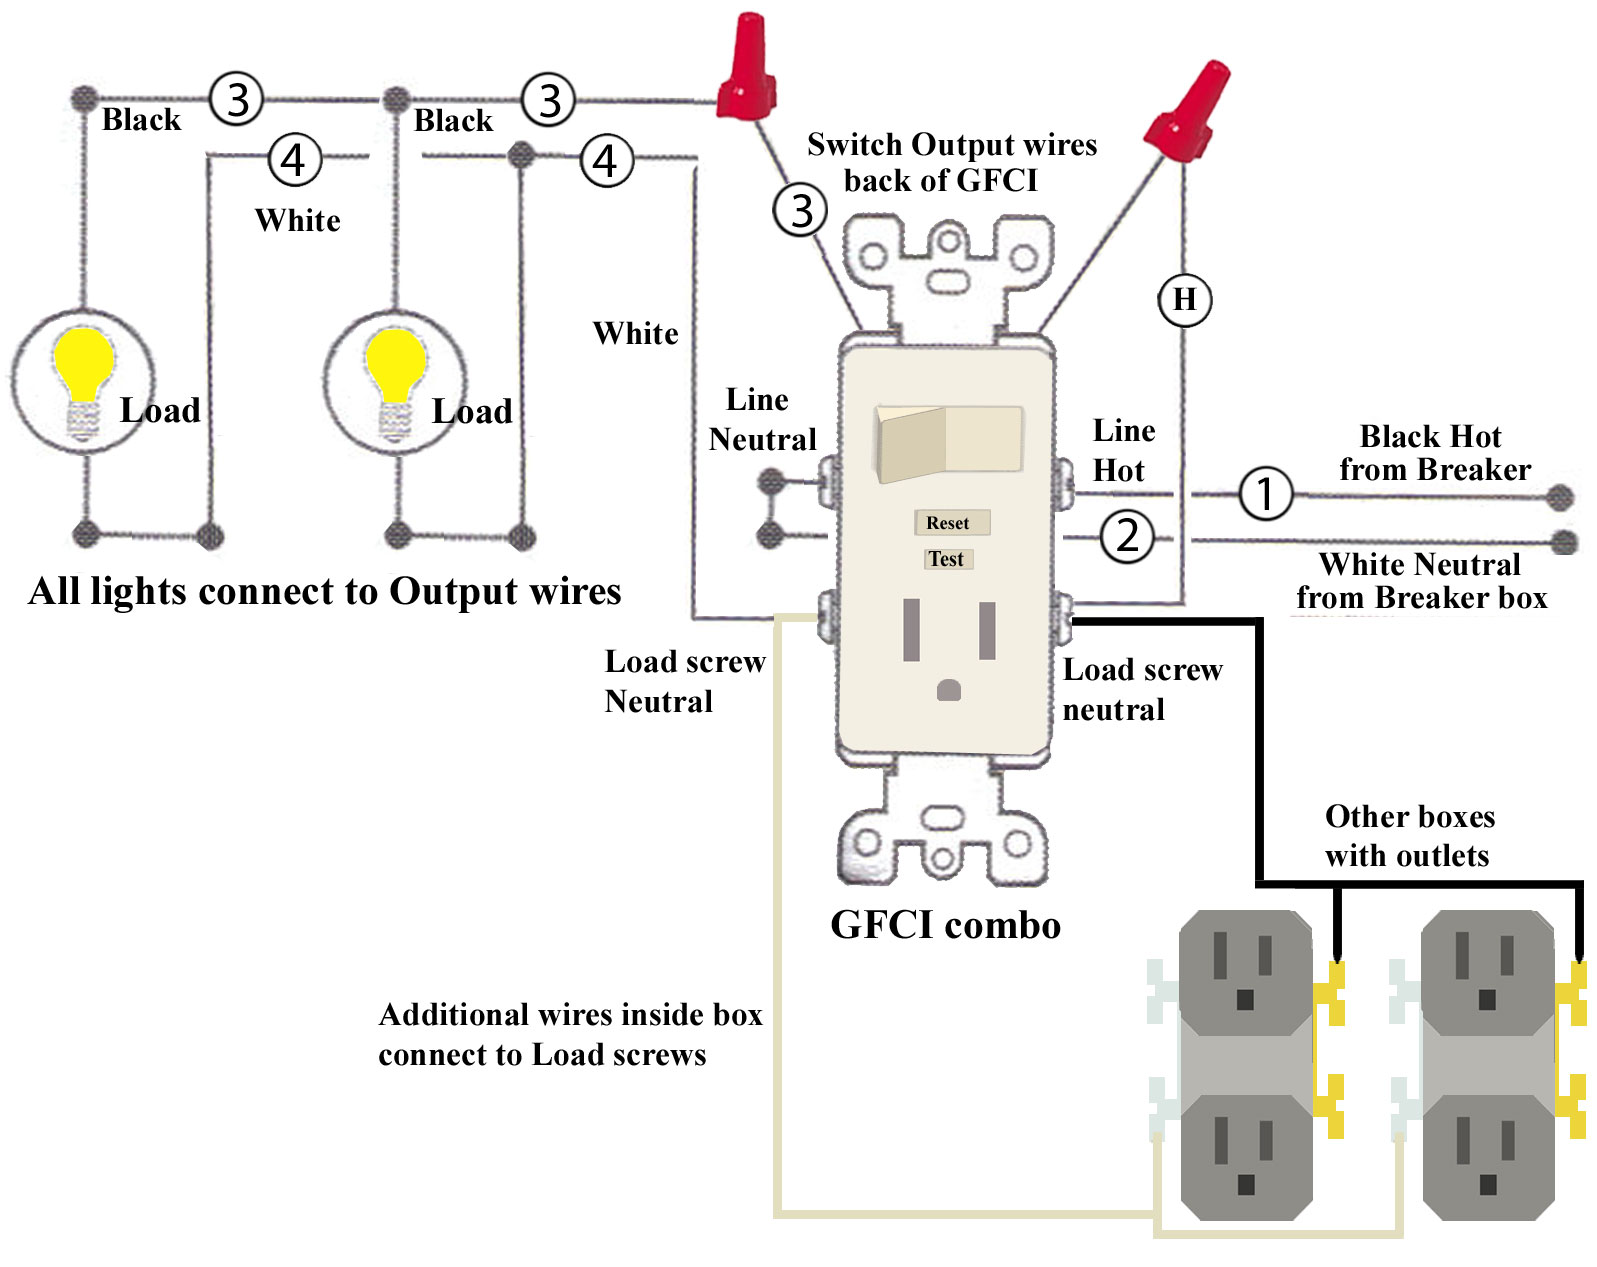 GFCI combo wiring3 update how to install and troubleshoot gfci combination switch wiring diagram at gsmportal.co